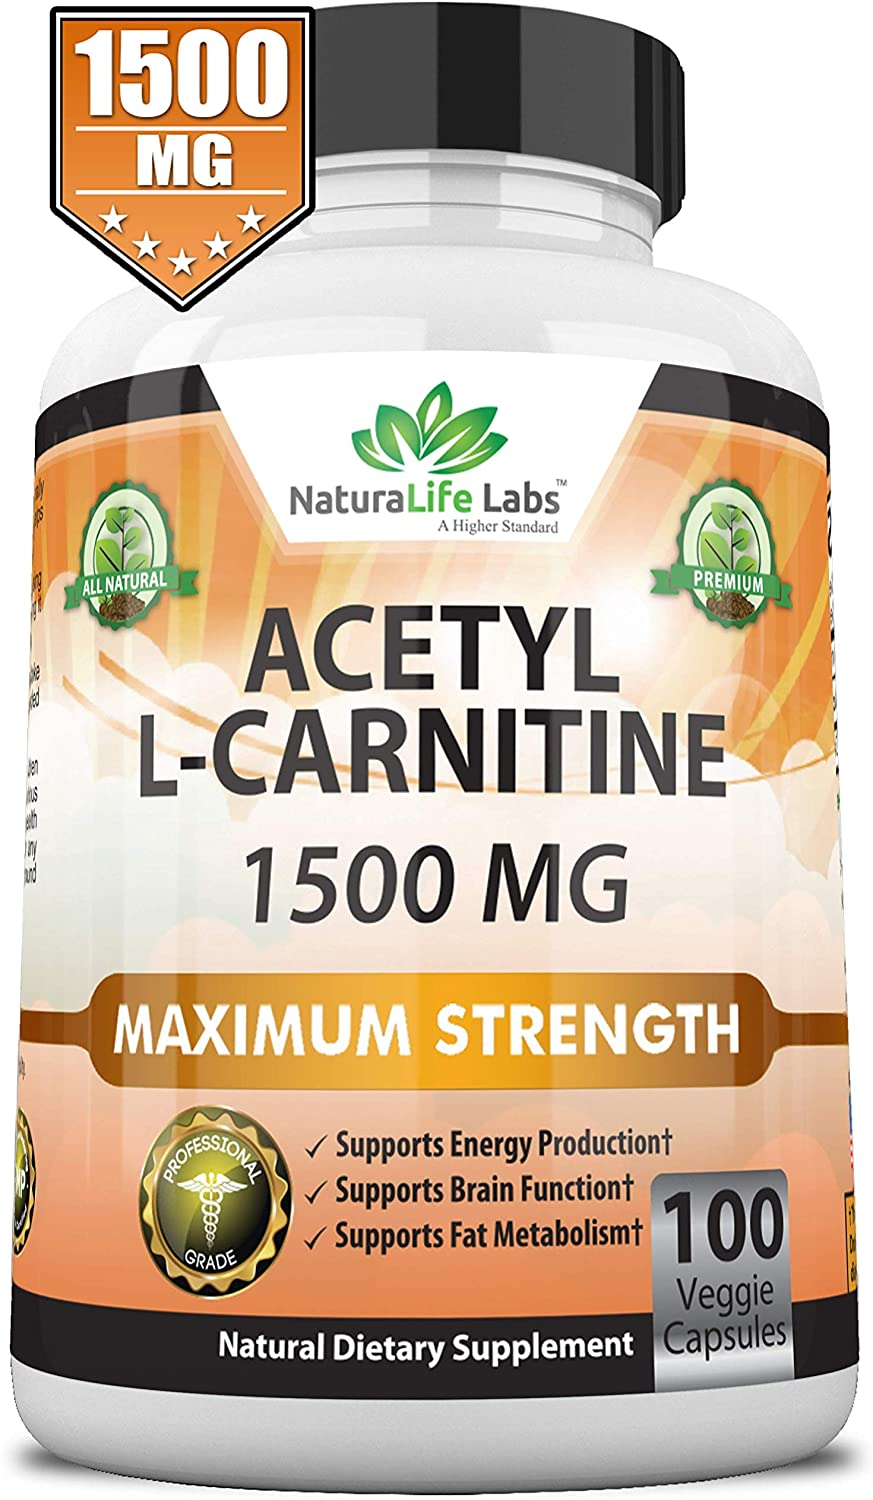 NaturaLife Labs Acetyl L-Carnitine, Maximum Strength